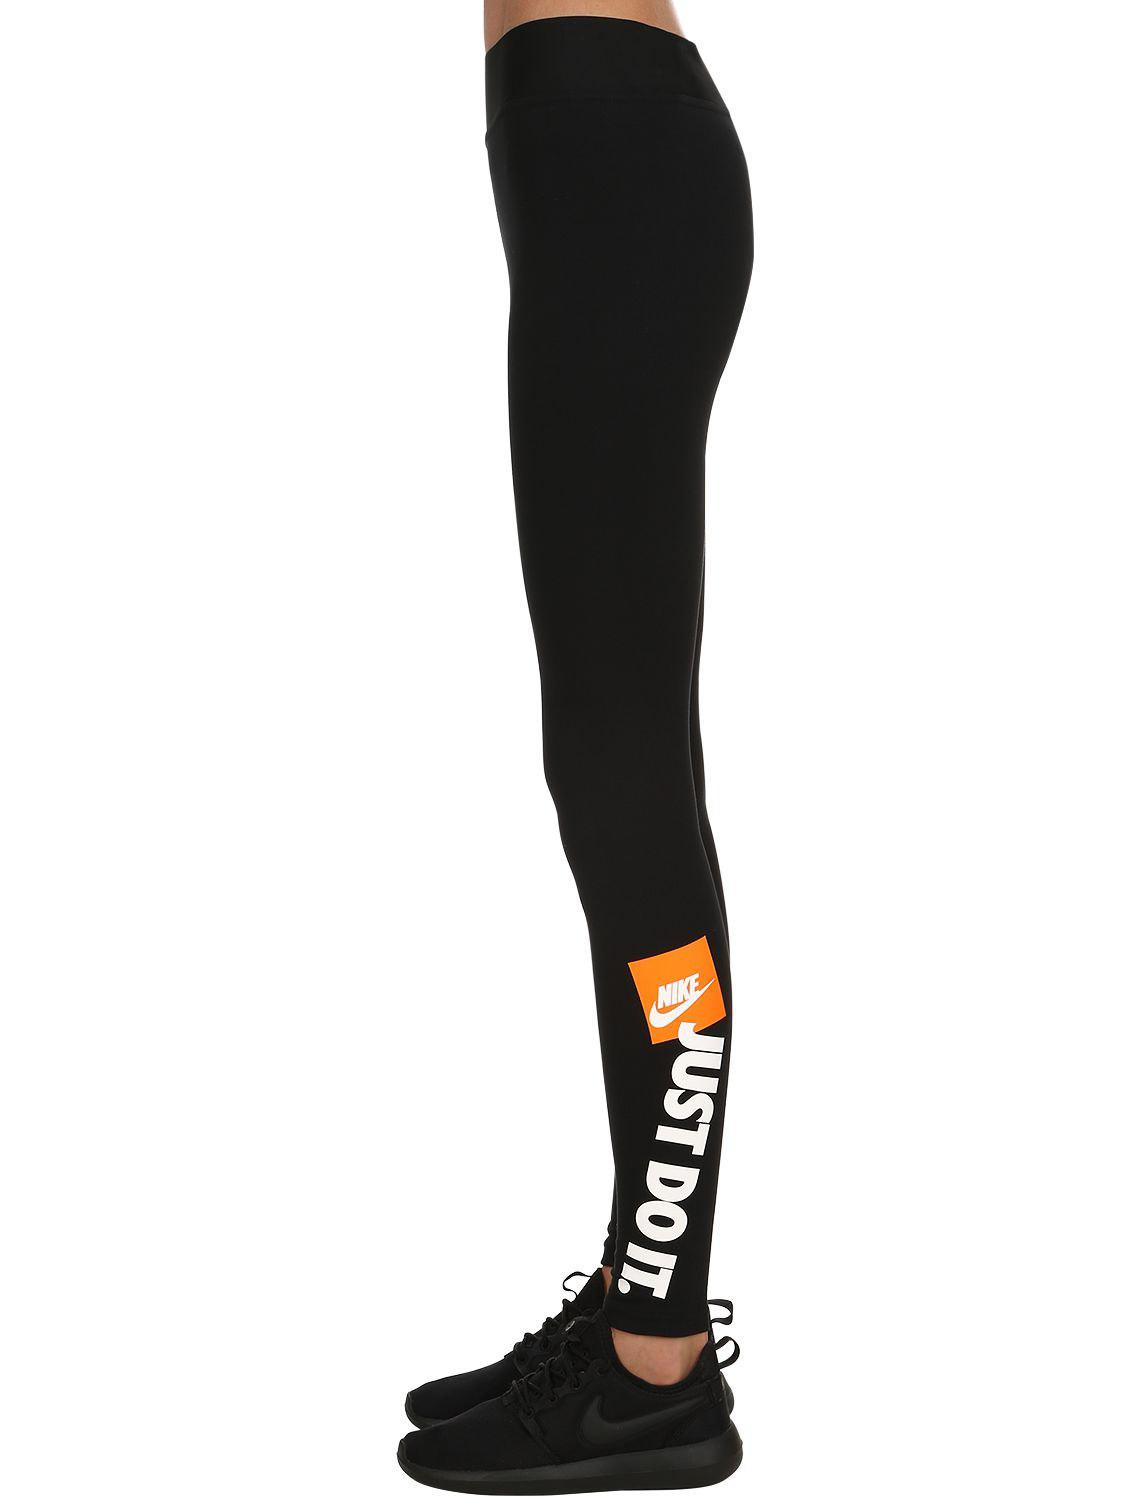 factory price for whole family new images of Just Do It Leggings